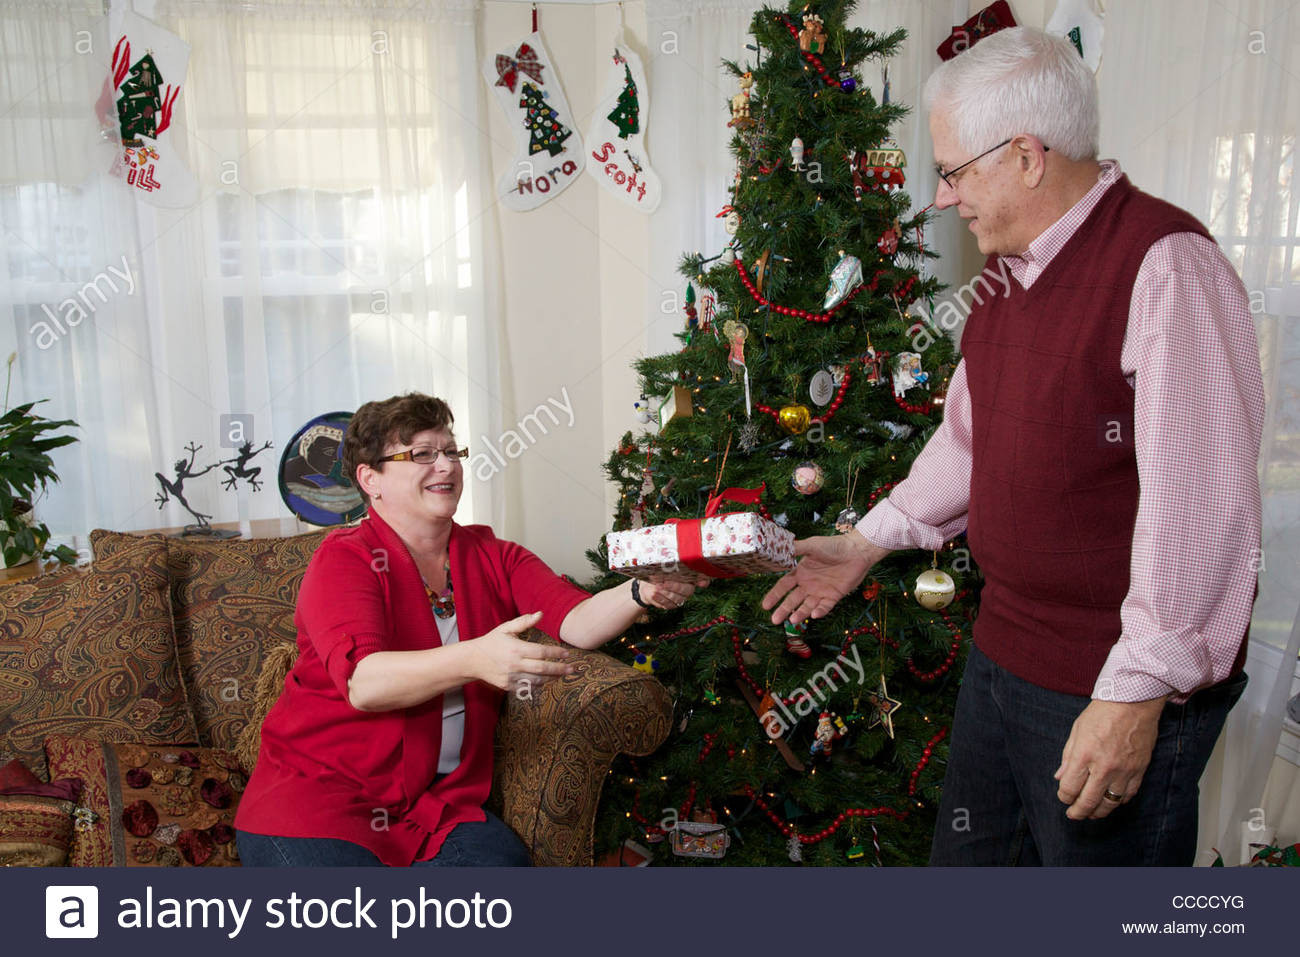 Best ideas about Gift Ideas For 65 Year Old Man . Save or Pin 65 Year Old Man Gift Ideas Gift Ftempo Now.